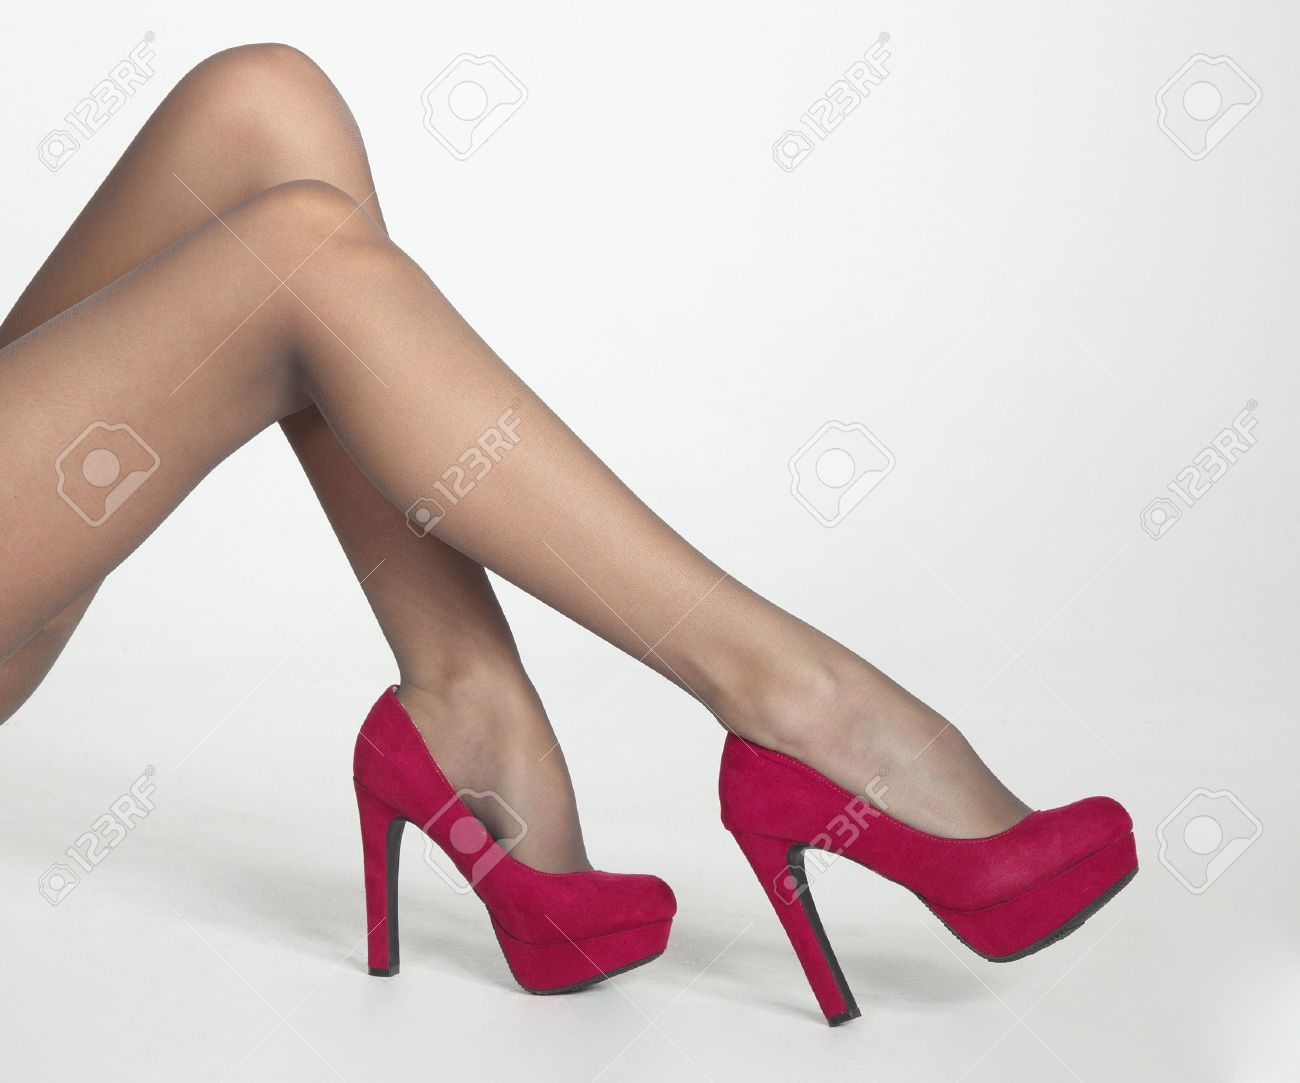 tips-pantyhose-and-high-heel-pics-can-little